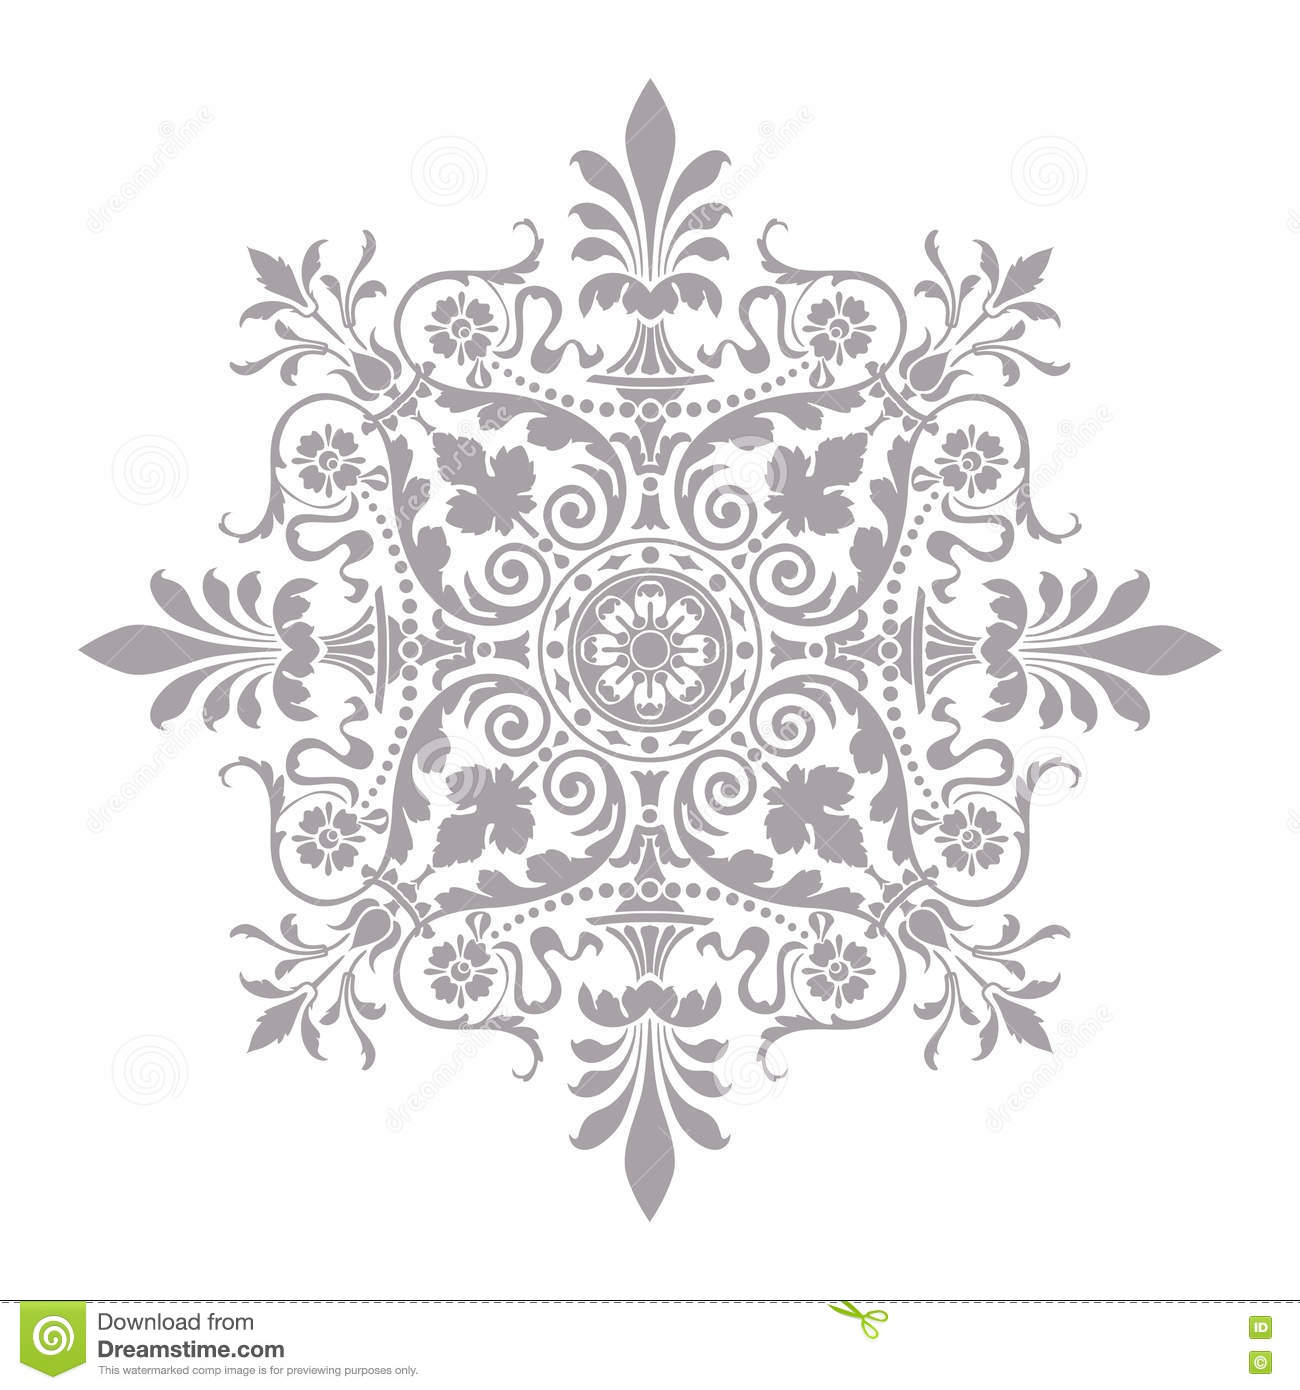 Floral Art Line Design : Ornamental round floral pattern decorative line art frame